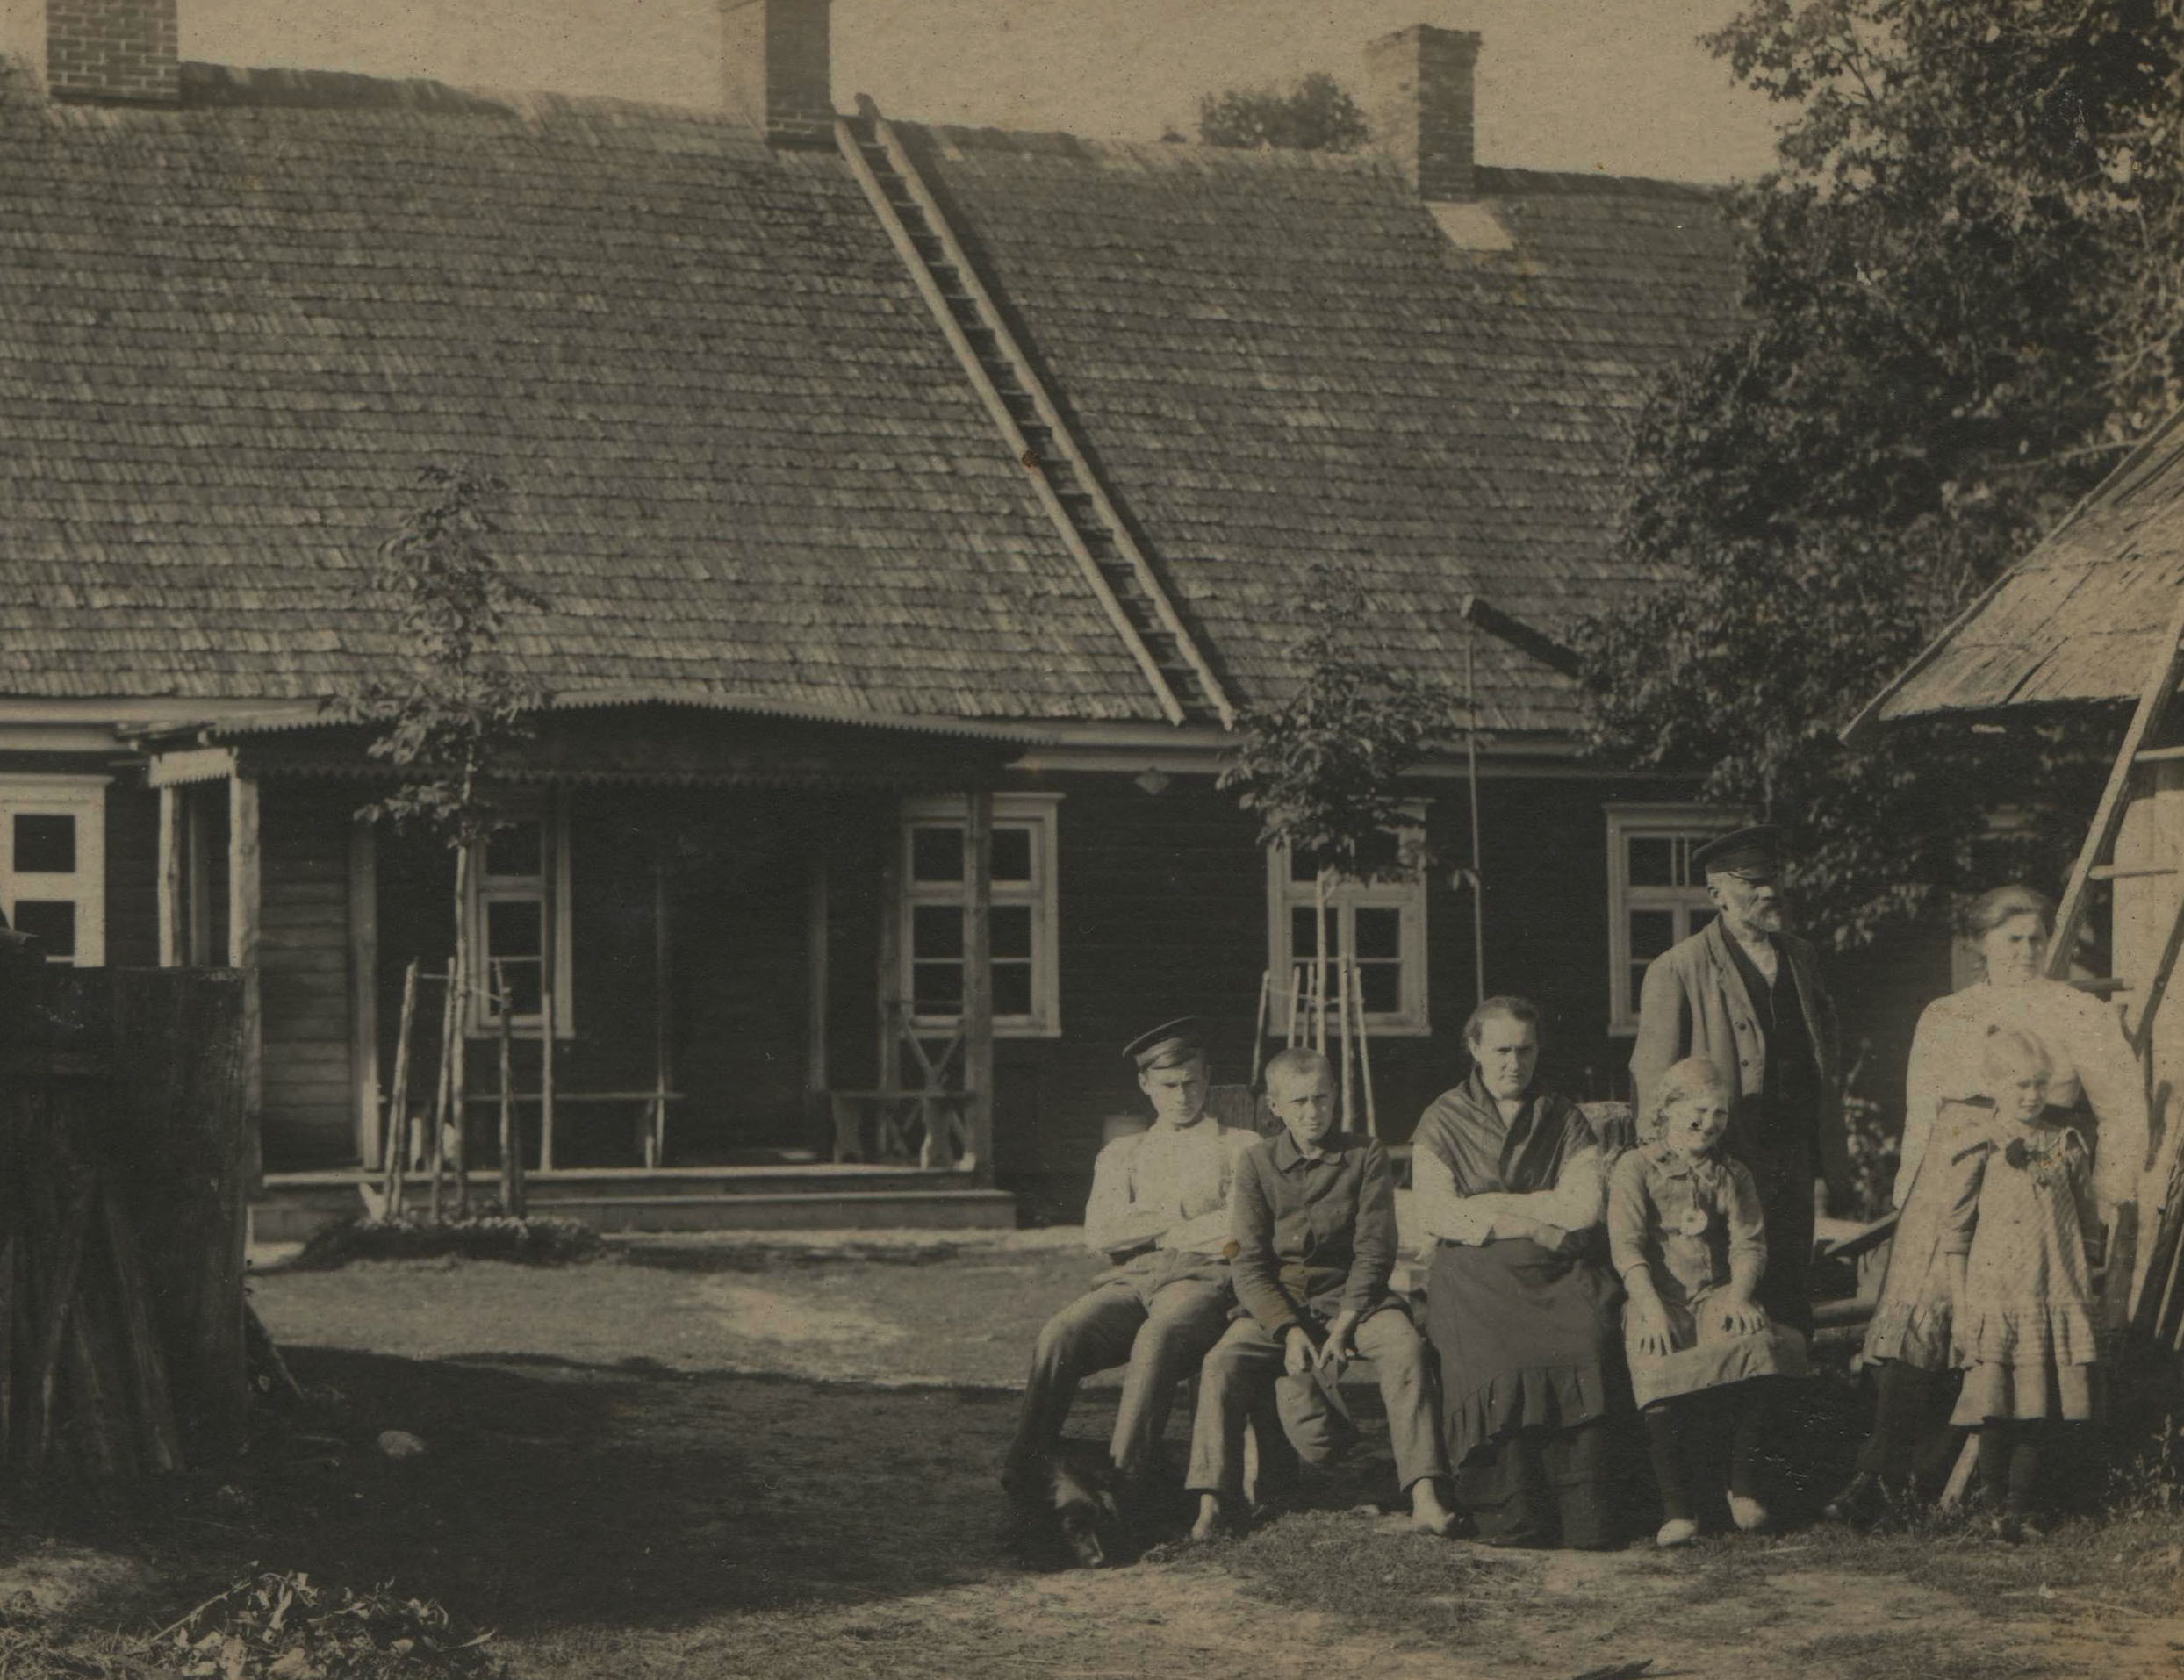 The Zalcmane family's khutor before the Soviet annexation